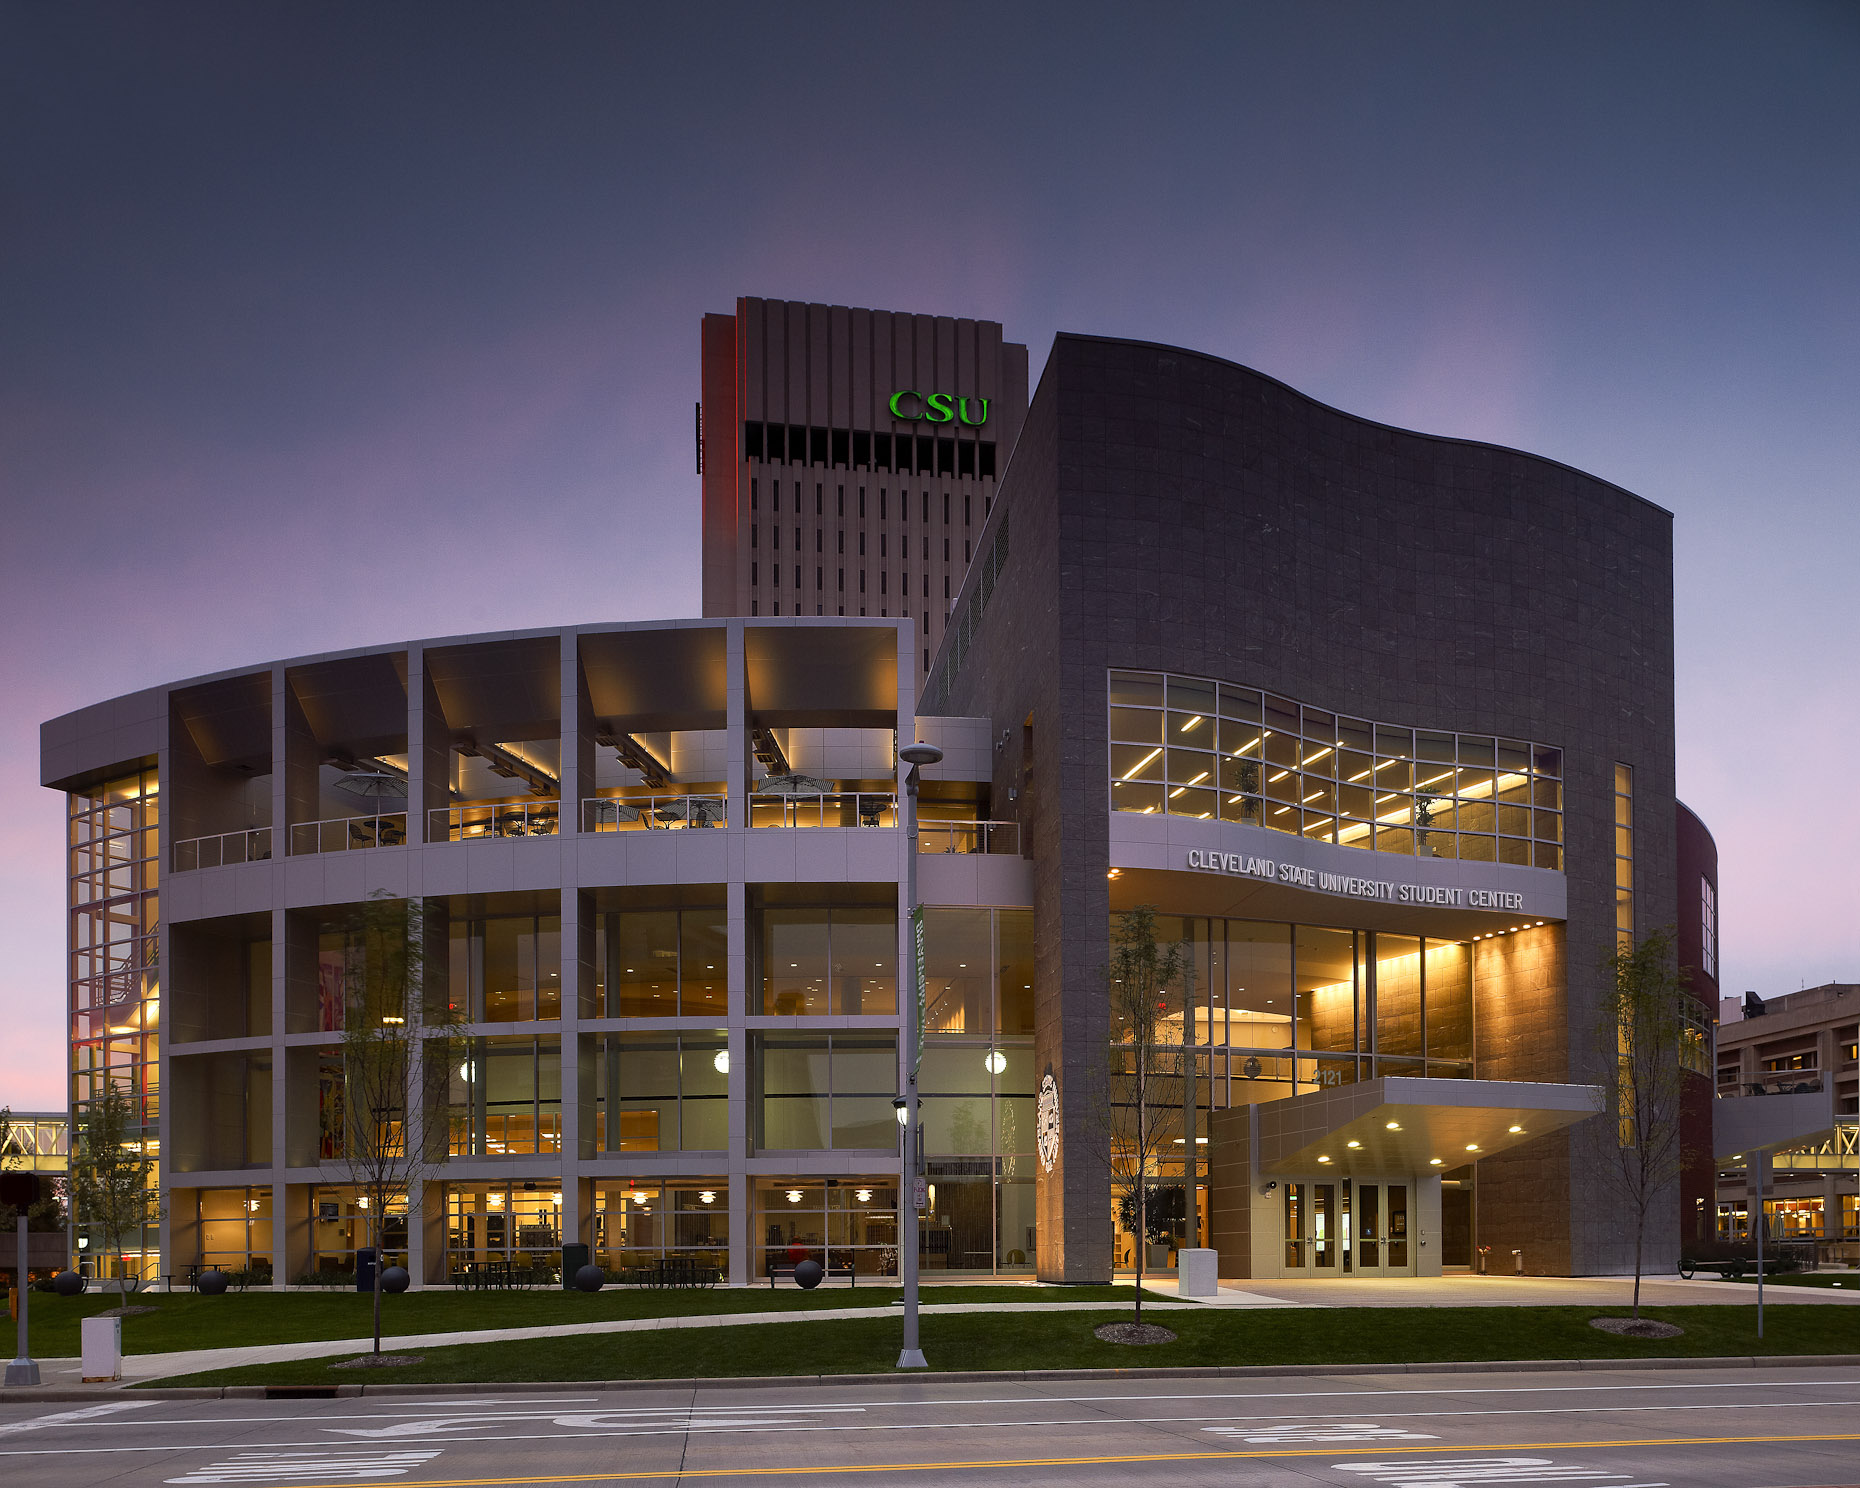 CSU Student Center at Cleveland State University by Gwathmey Siegel & Associates and Braun Steidl Architects Photographed by Brad Feinknopf based in Columbus, Ohio